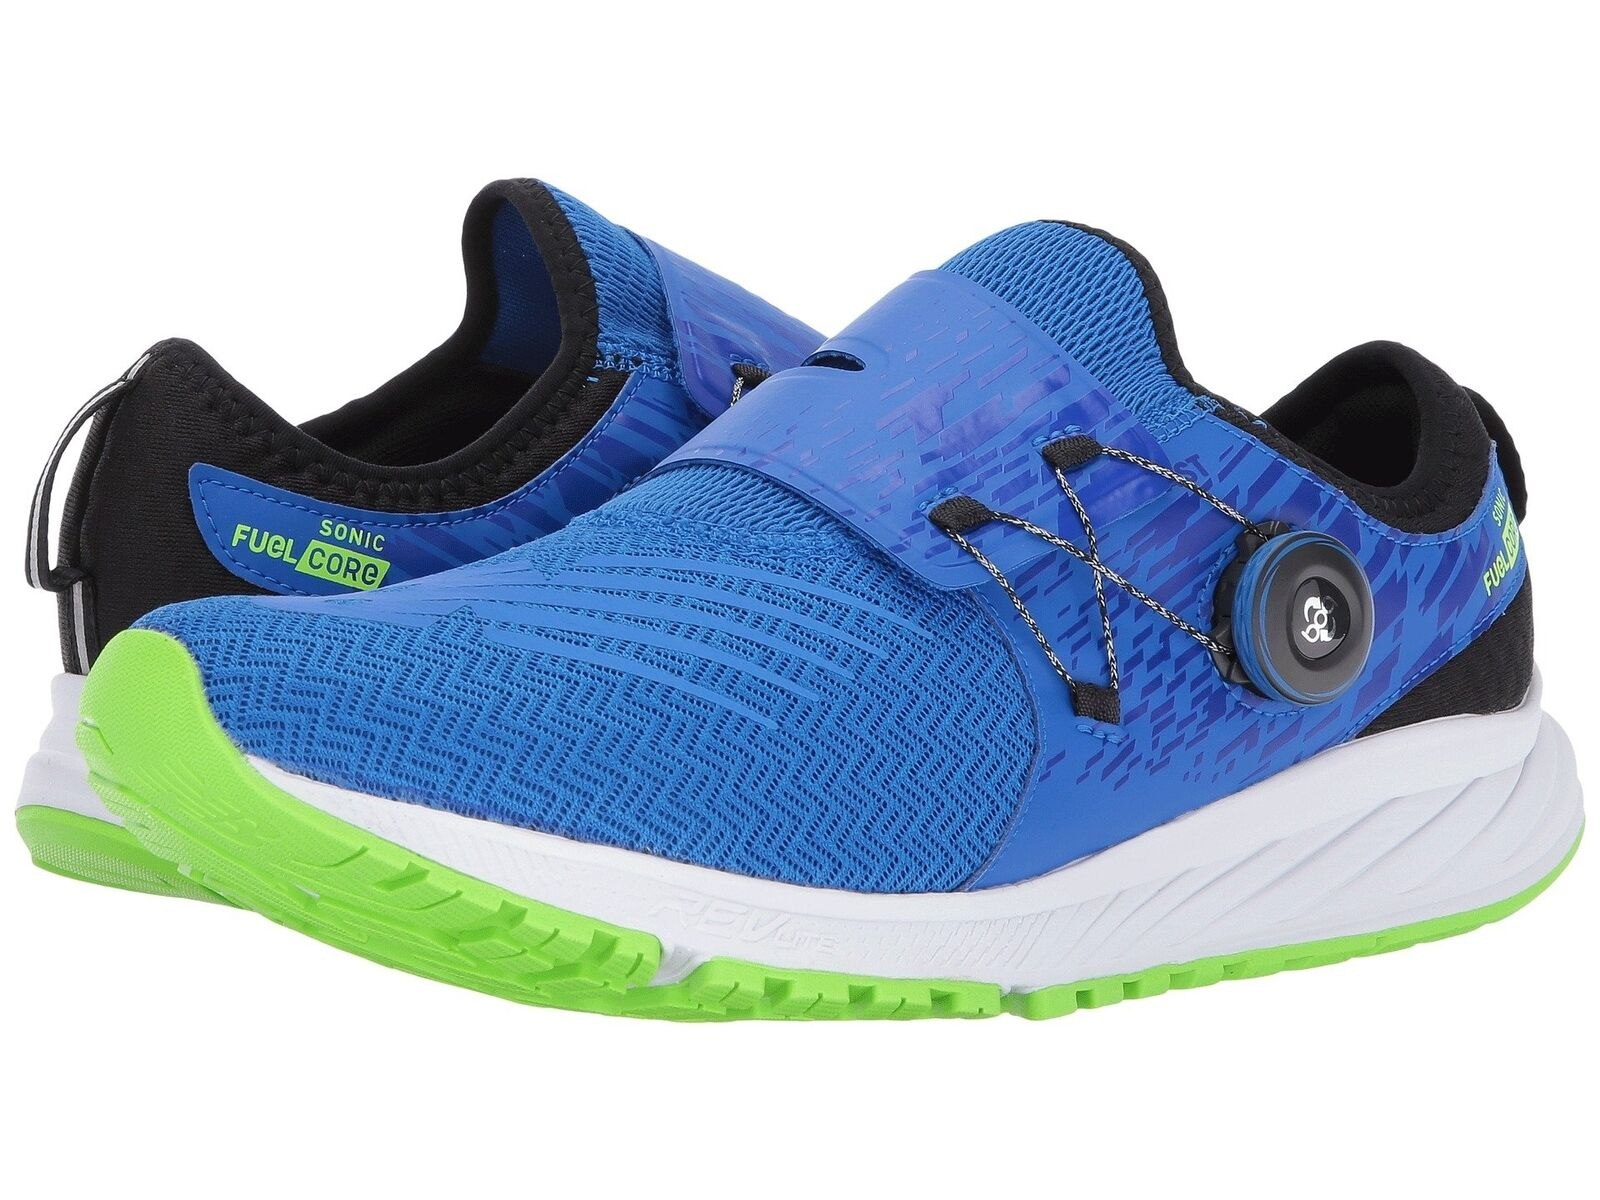 NEW BALANCE Uomo 'Sonic V1' Blue Running Shoes Sz 10-11.5 EE Wide NEW! 229556